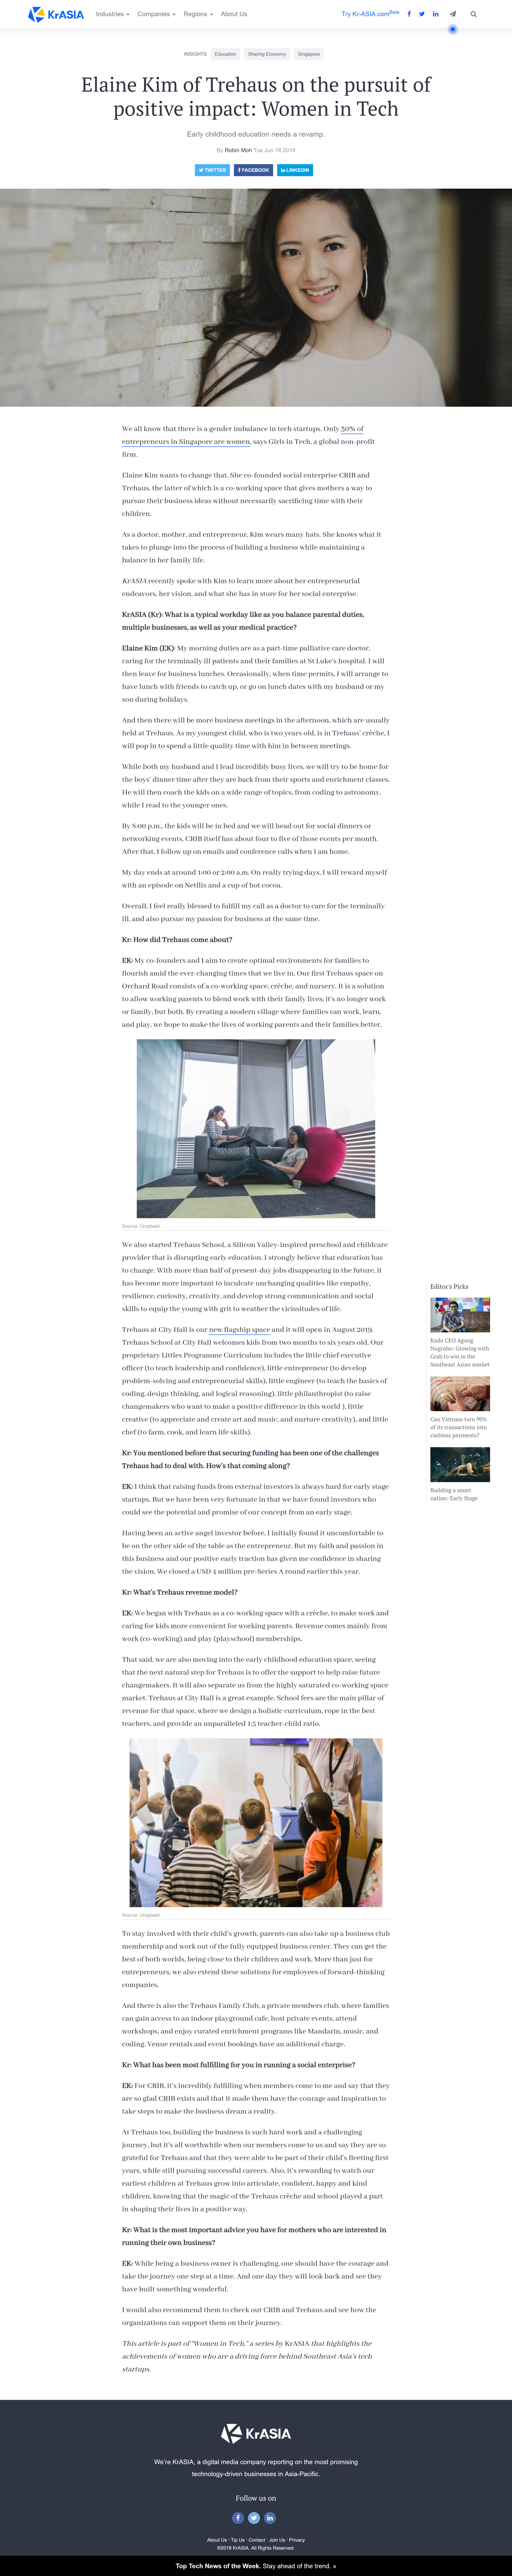 screencapture-kr-asia-elaine-kim-of-trehaus-on-the-pursuit-of-positive-impact-women-in-tech-2019-07-08-13_26_09.png